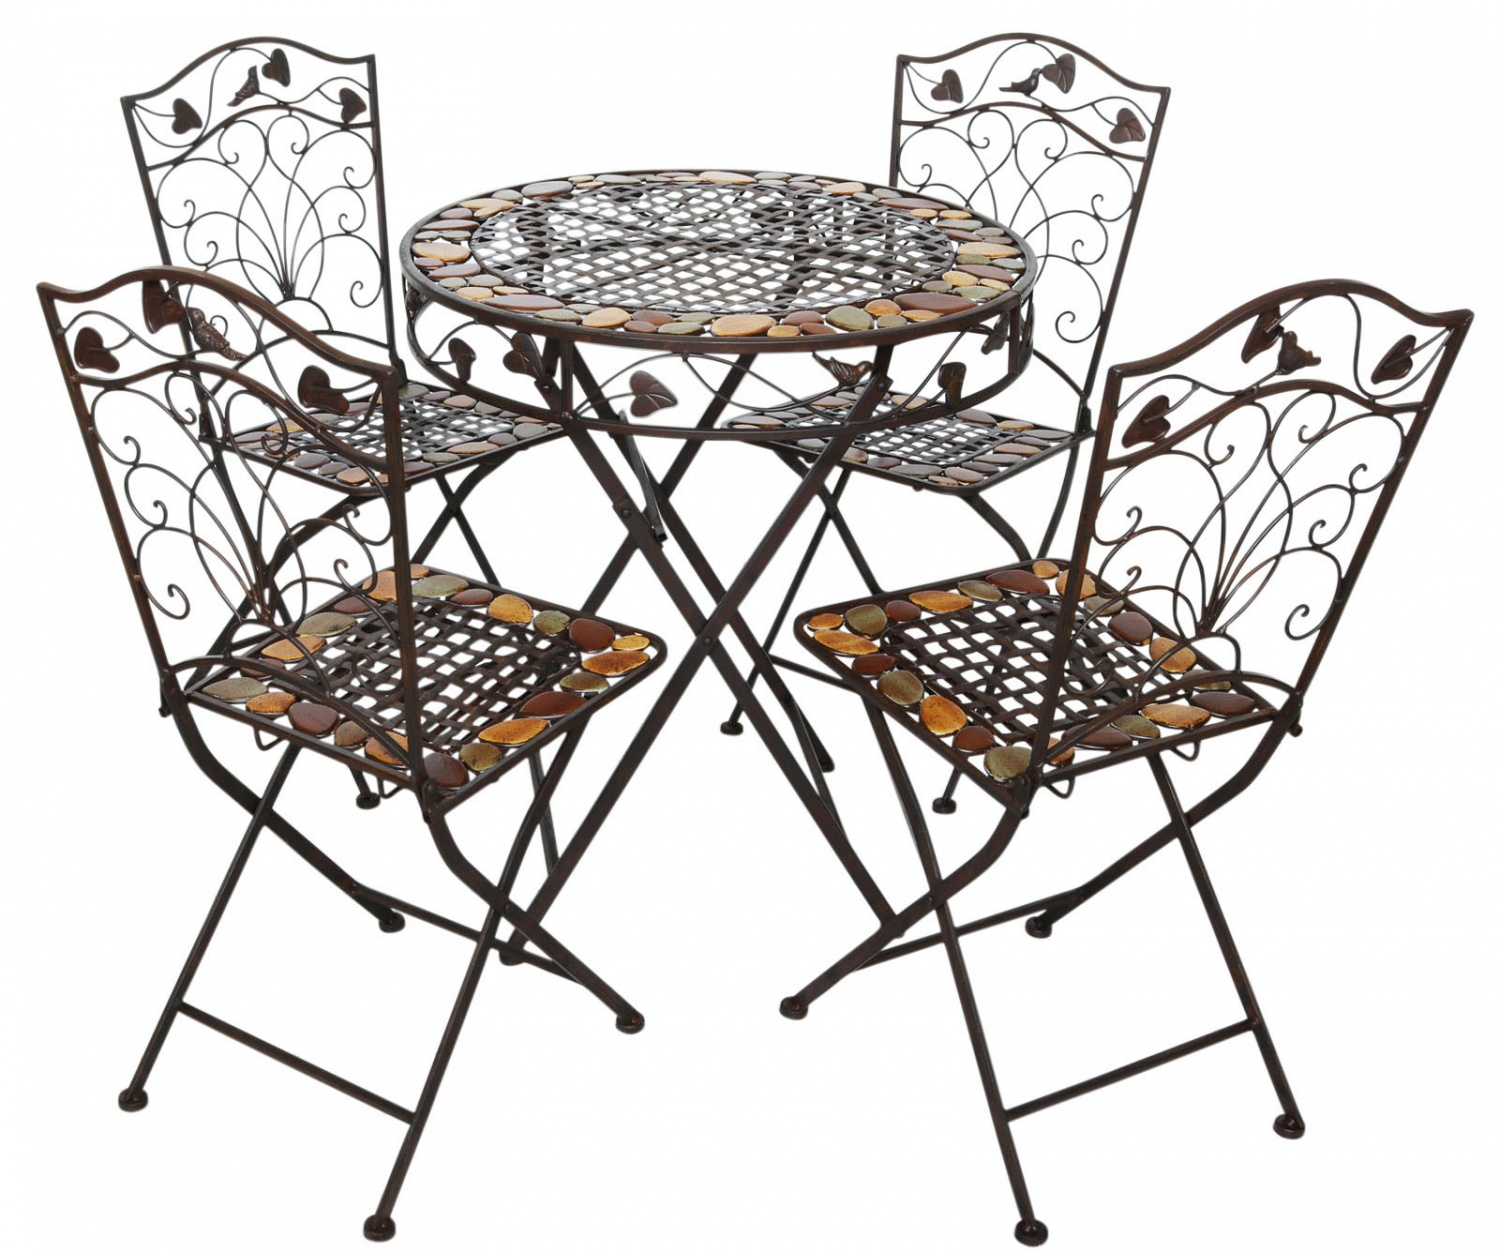 antique cast iron garden table and chairs retro diner 4 furniture